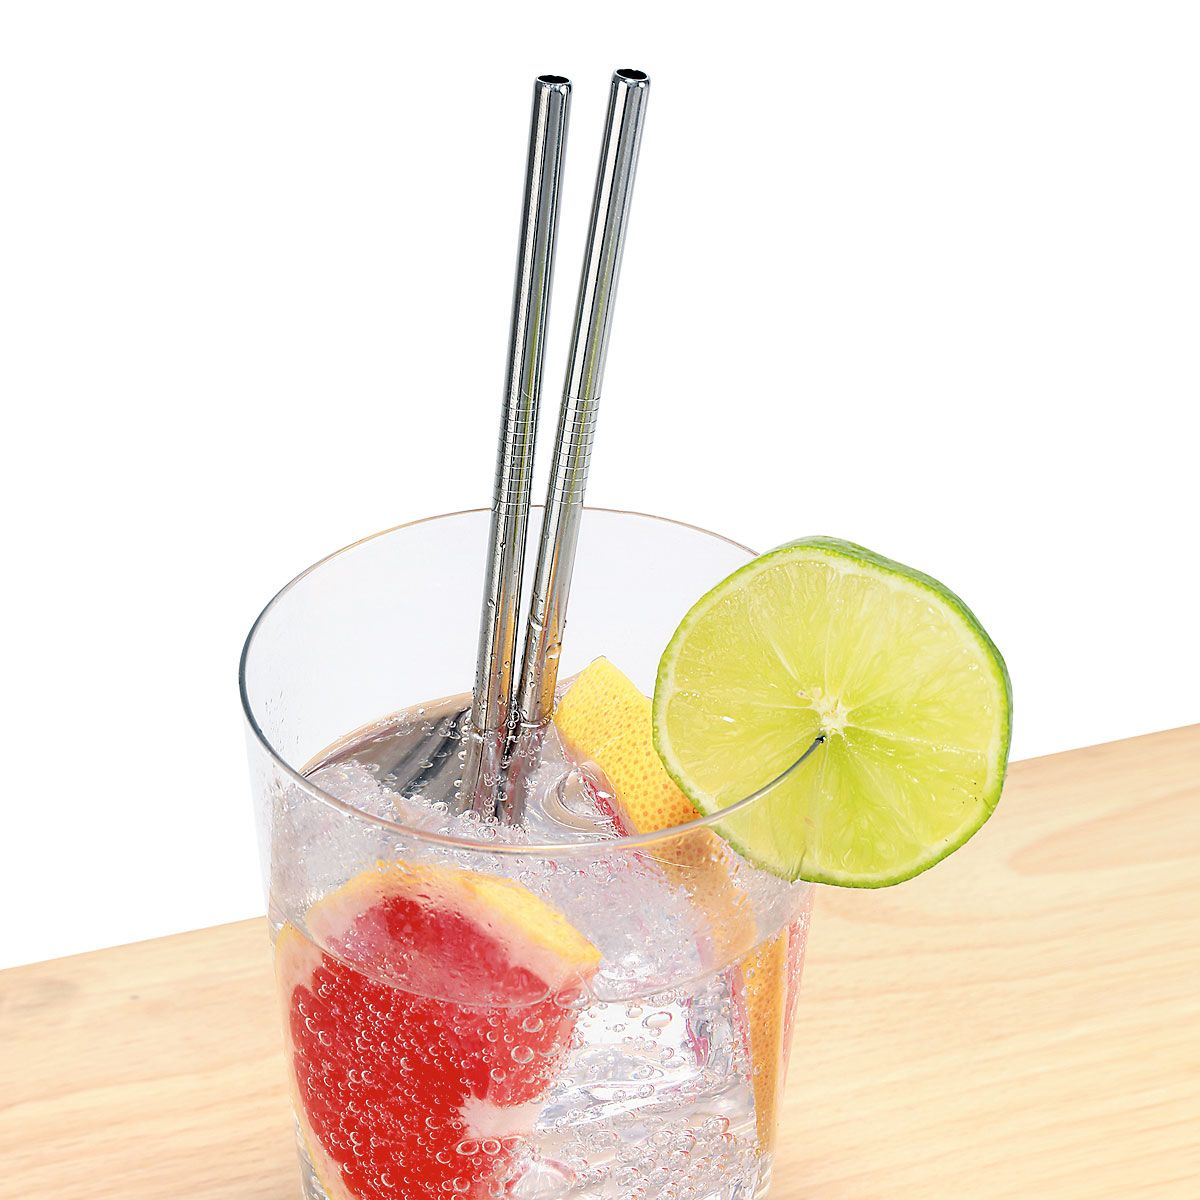 Stainless Steel Straws & Cleaning Brush